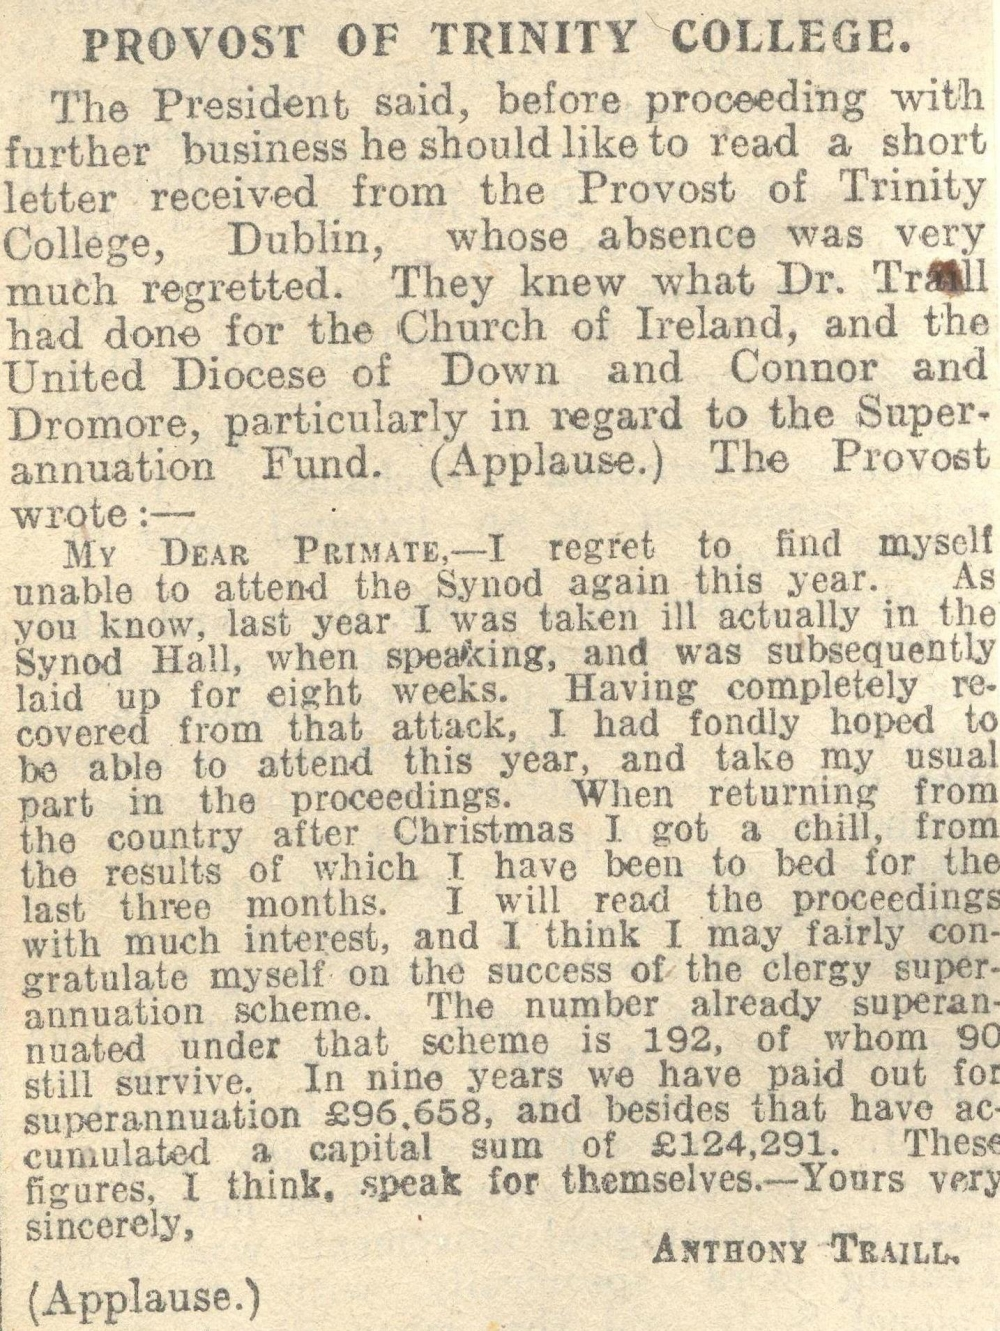 Letter of good wishes received from the Provost of Trinity College Dublin, reproduced in full in which he reports on his recovery from serious illness and also commending the success of the clergy superannuation scheme, RCB Library MS 297/17.